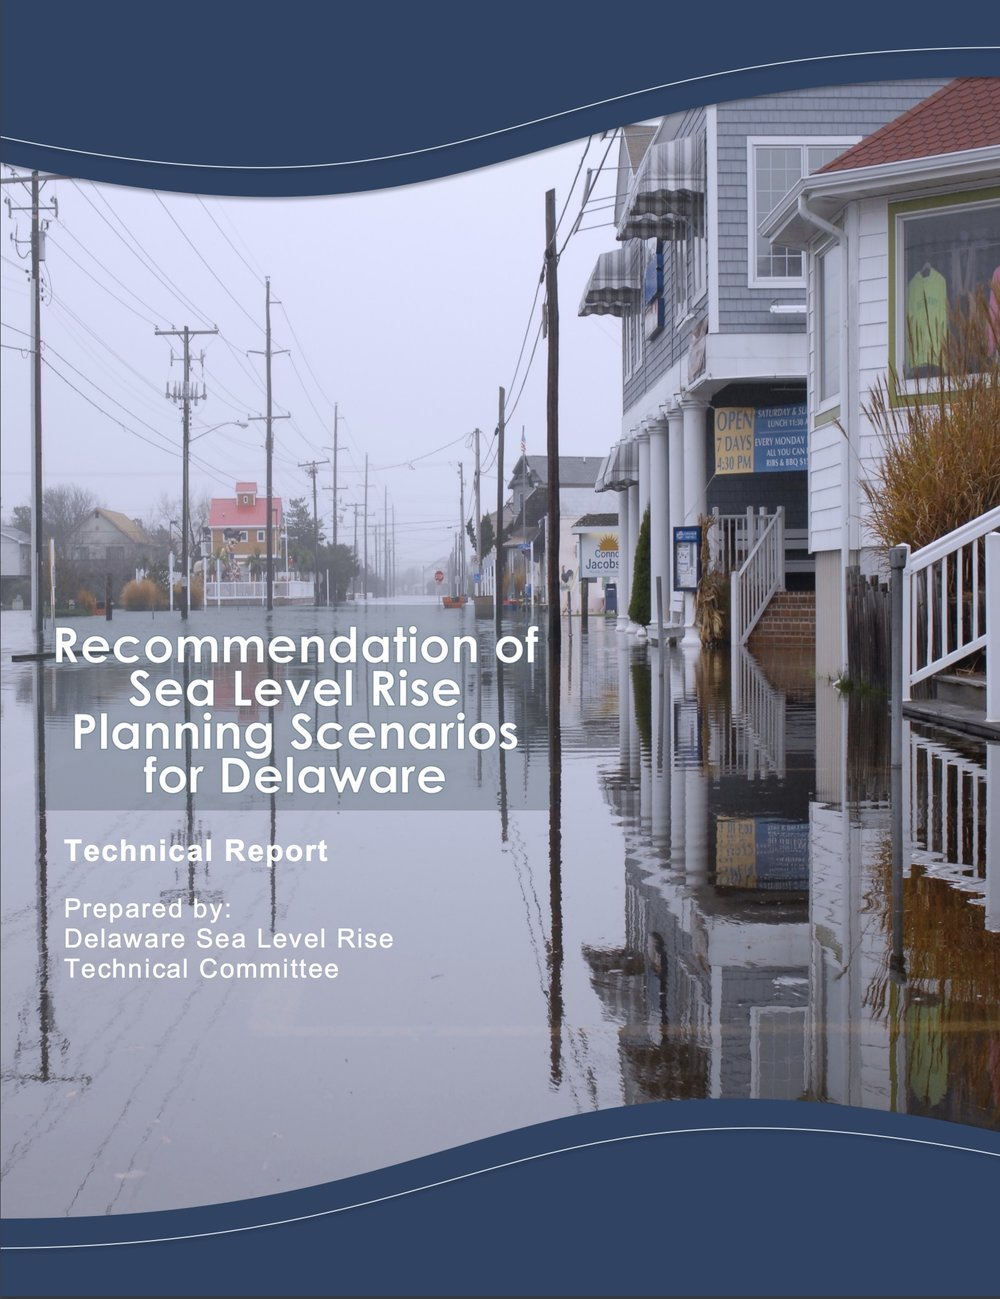 Recommendation of Sea Level Rise Planning Scenarios for Delaware